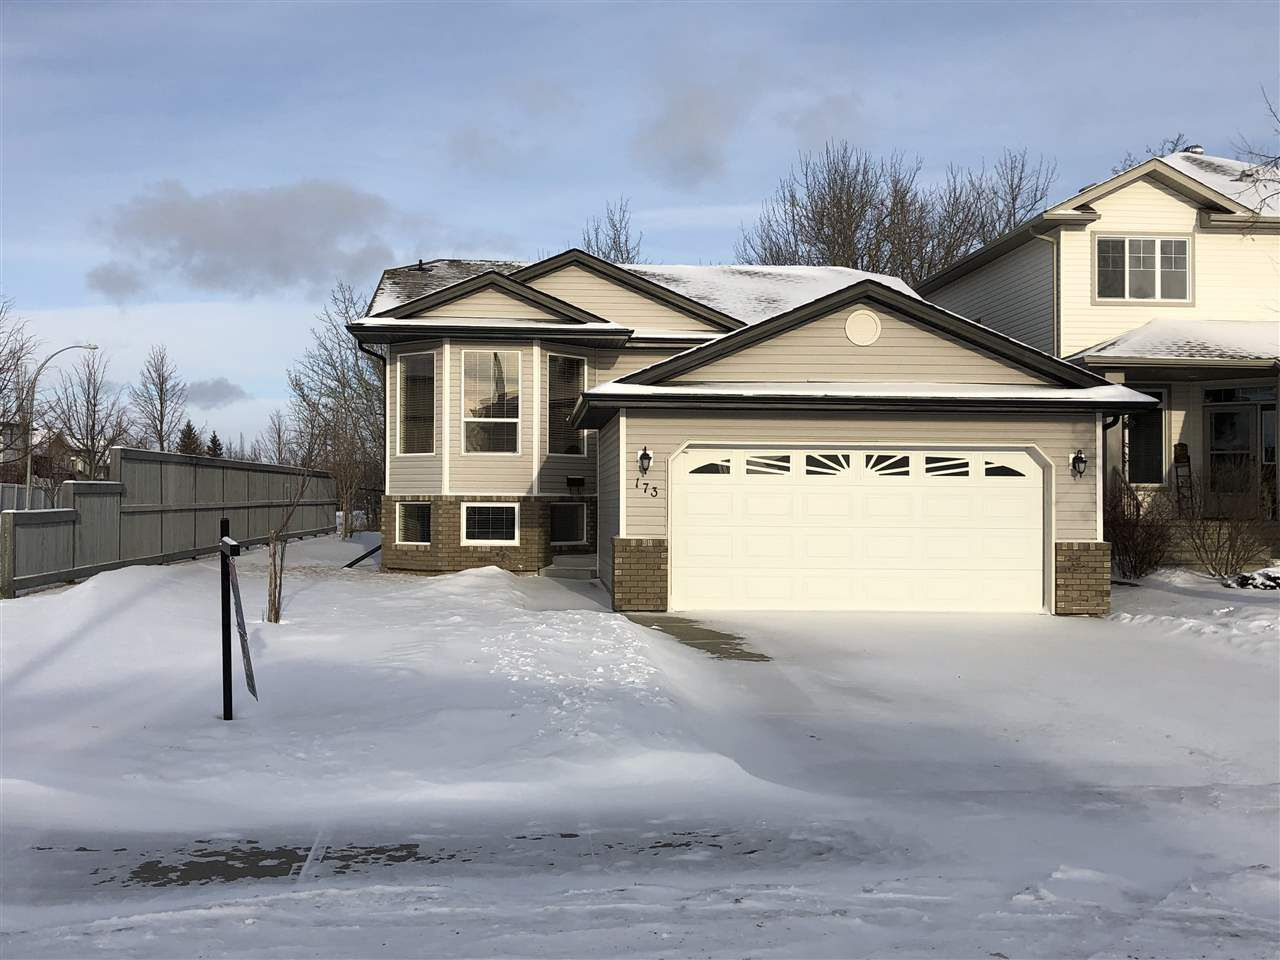 Main Photo: 173 FOXHAVEN Way: Sherwood Park House for sale : MLS®# E4137115